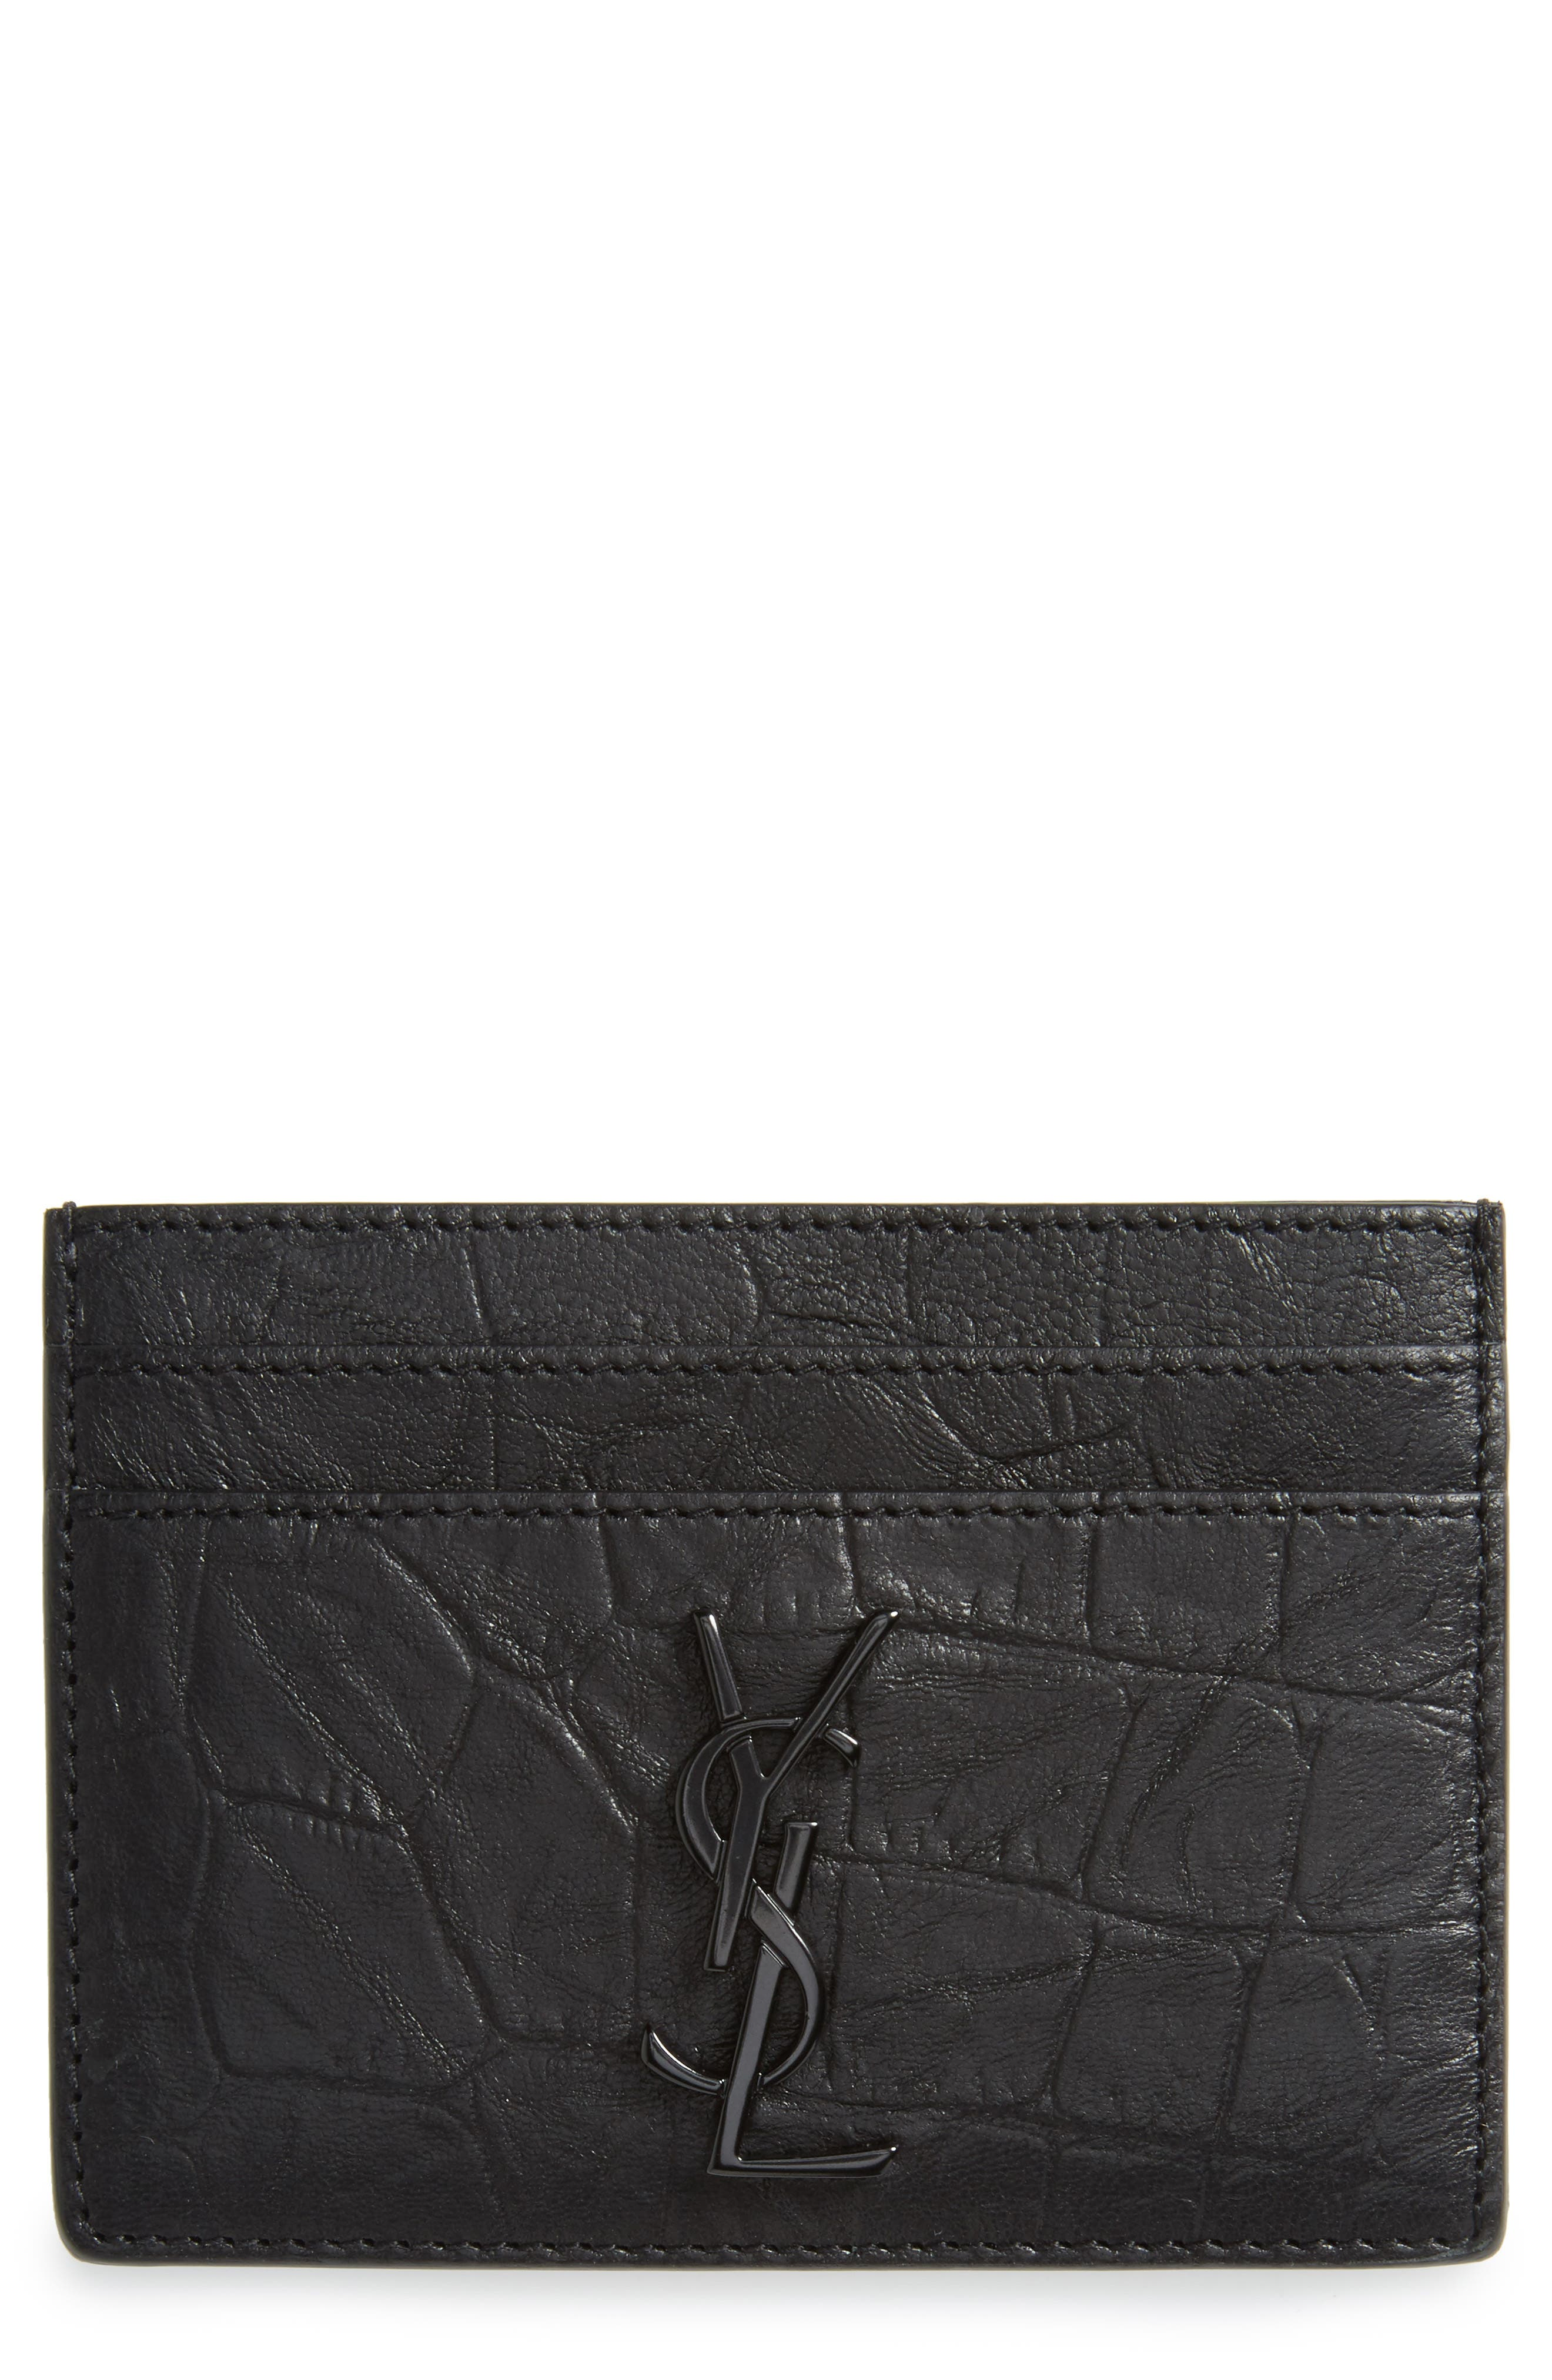 Croc Embossed Calfskin Leather Card Case,                         Main,                         color, 001